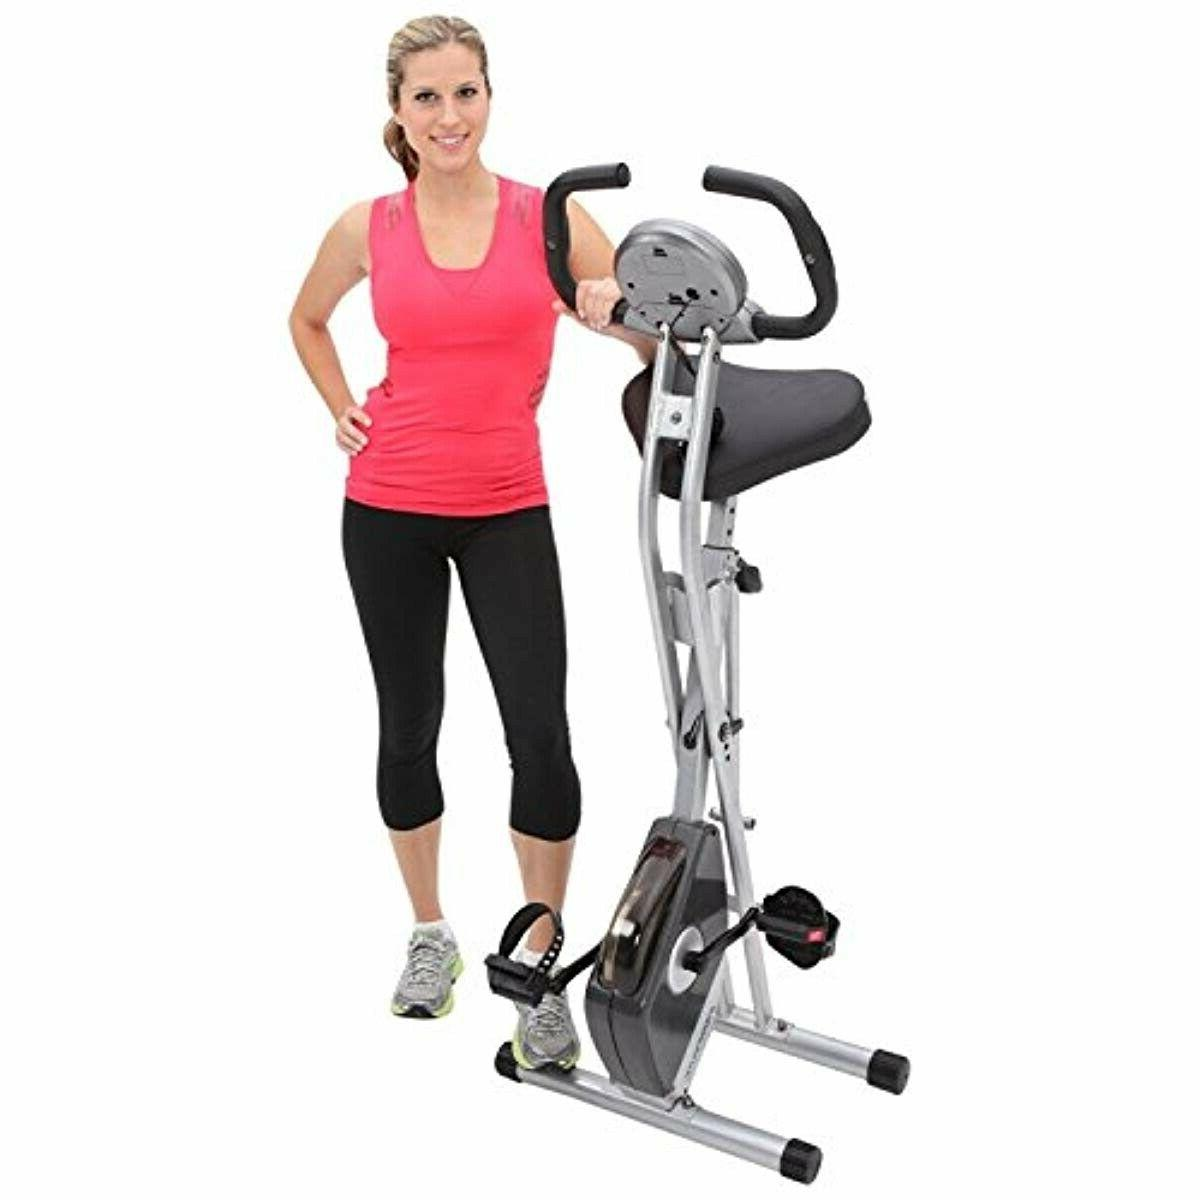 Exerpeutic Upright Bike Exercise/Workout